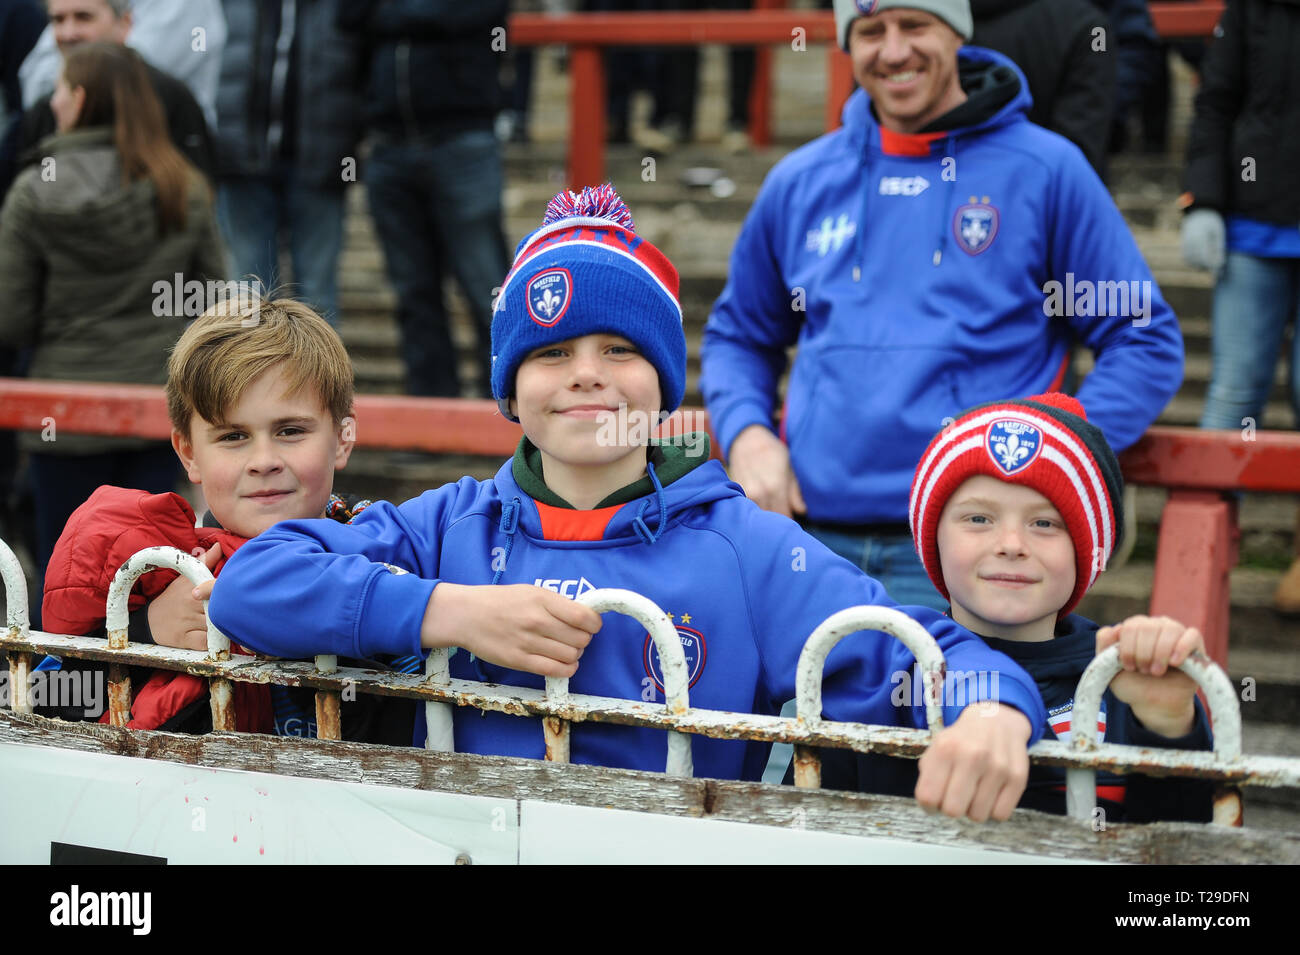 Wakefield, UK. 31 March 2019. Mobile Rocket Stadium, Wakefield, England; Rugby League Betfred Super League, Wakefield Trinity vs Salford Red Devils; Wakefield Trinity supporters. Credit: Dean Williams/Alamy Live News - Stock Image